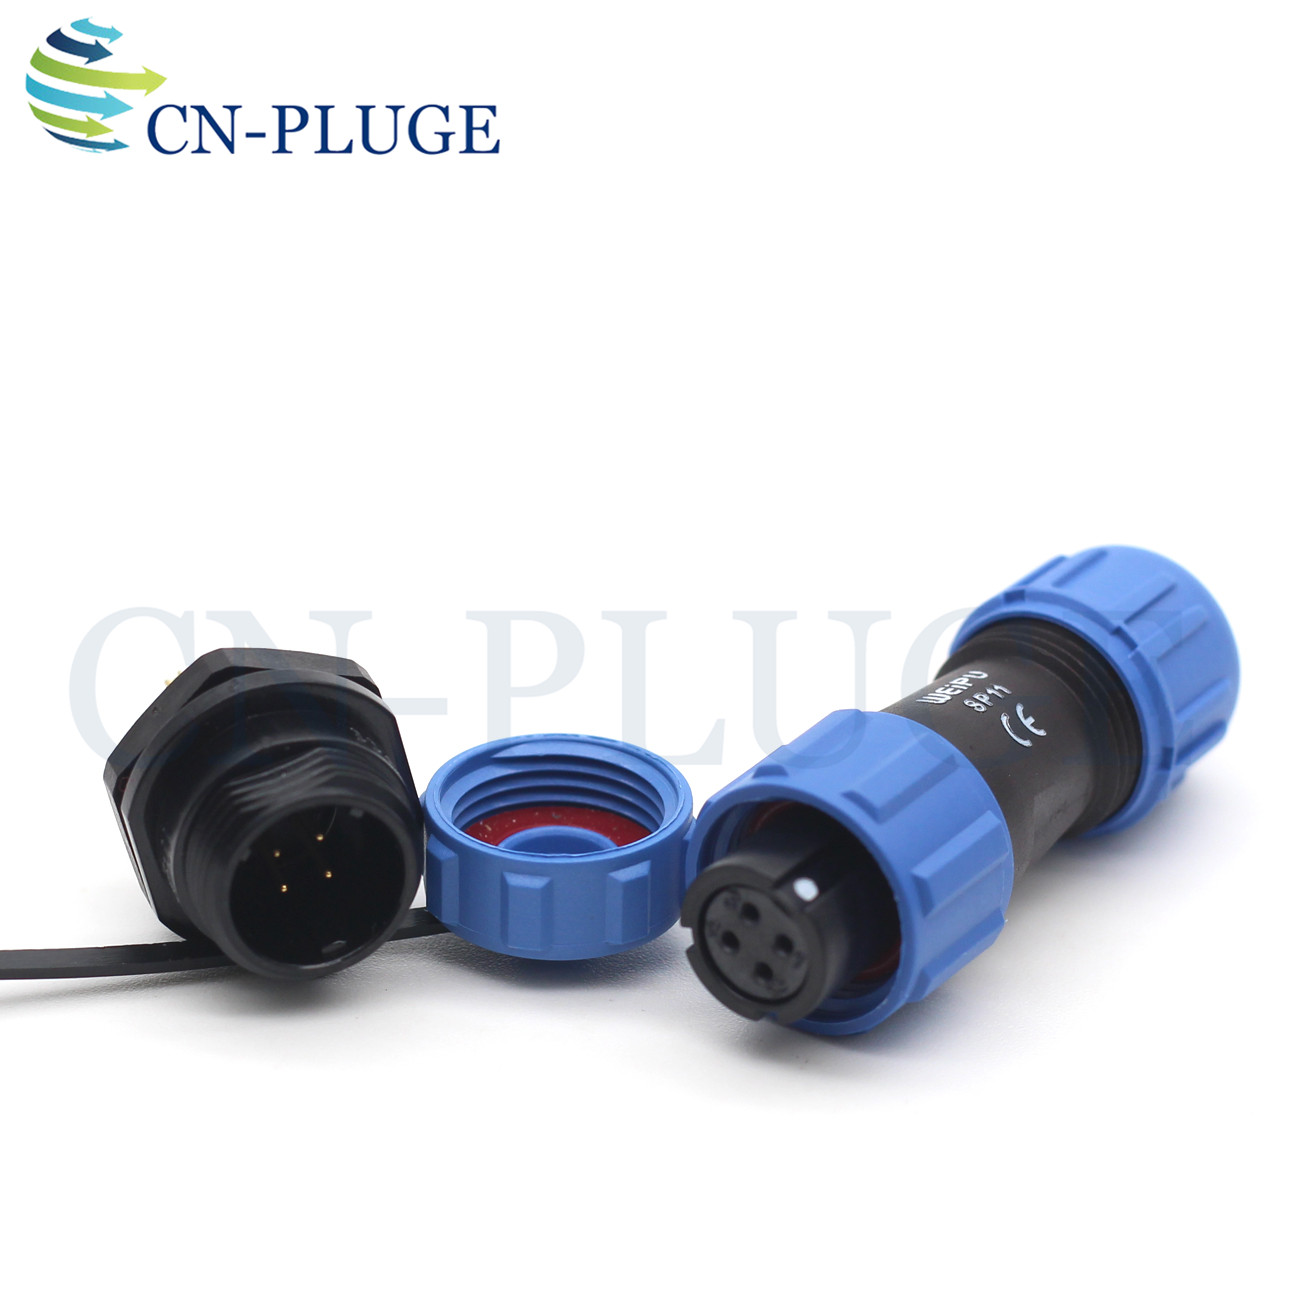 IP68 4pin Plug and Socket 4pin, Direct Plug SD13 4pin Waterproof Power Cable Connector Male -Socket auto Electrical Power Connector Plug Female